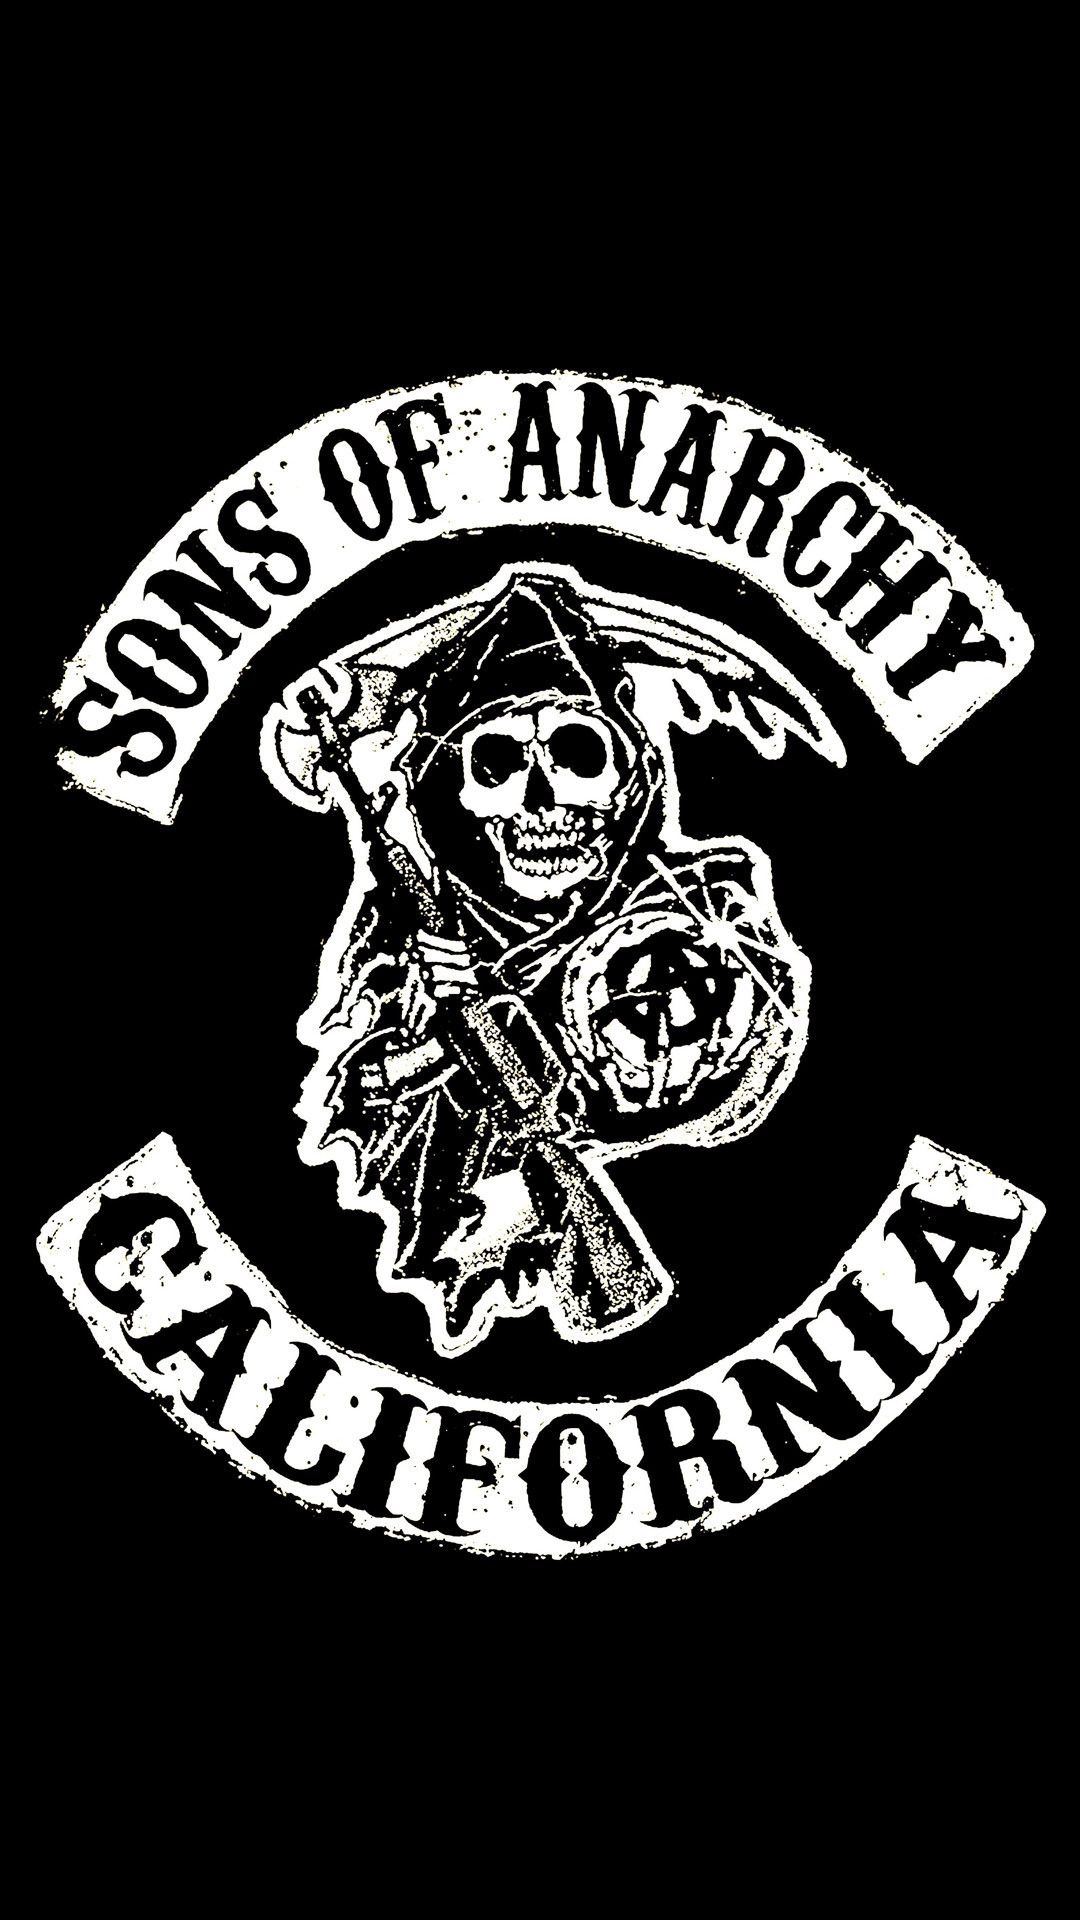 Sons Of Anarchy Hd Wallpaper Iphone In 2020 Sons Of Anarchy Tattoos Sons Of Anarchy Anarchy